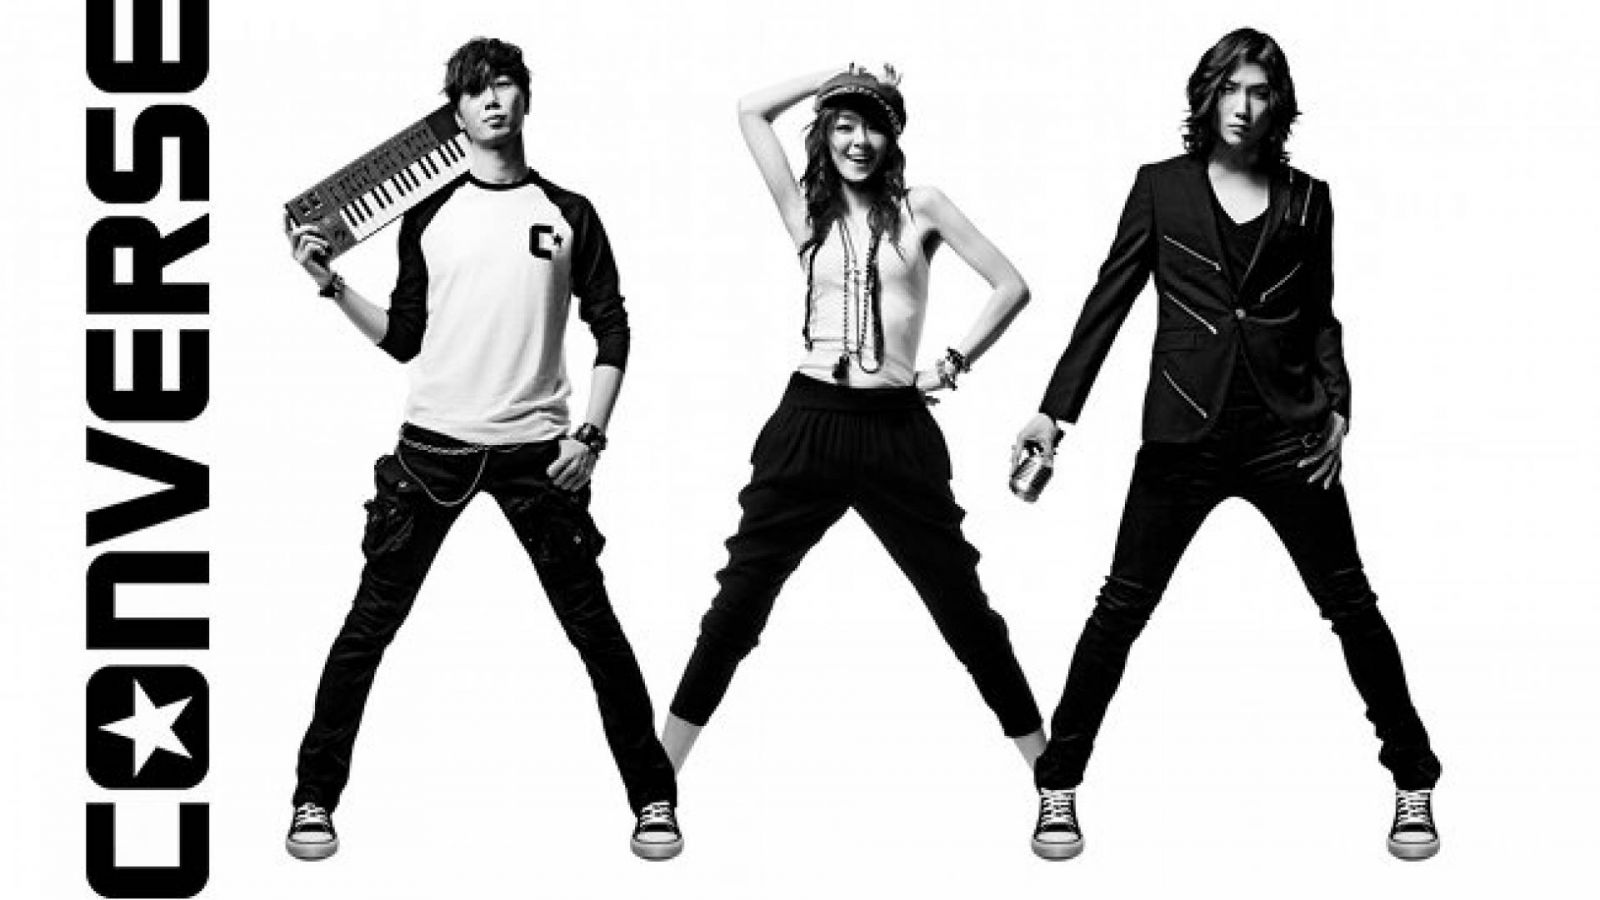 Projeto Three Artists. One Song da Converse © Converse Inc.